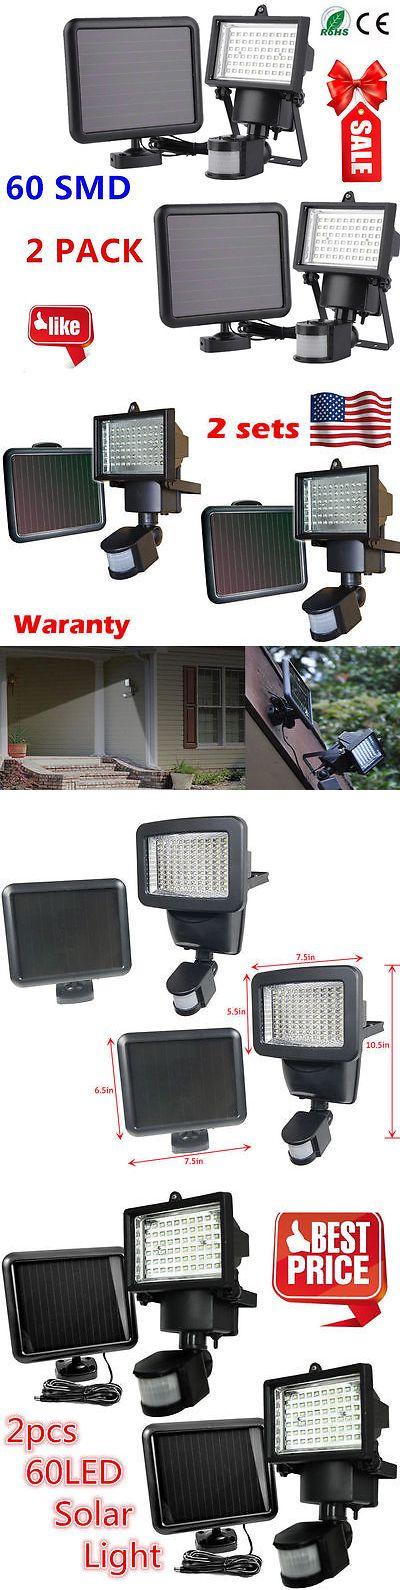 farm and garden: 2Pack 60 Smd Led Solar Powered Motion Sensor Security Light Flood Light Lamp To BUY IT NOW ONLY: $32.25